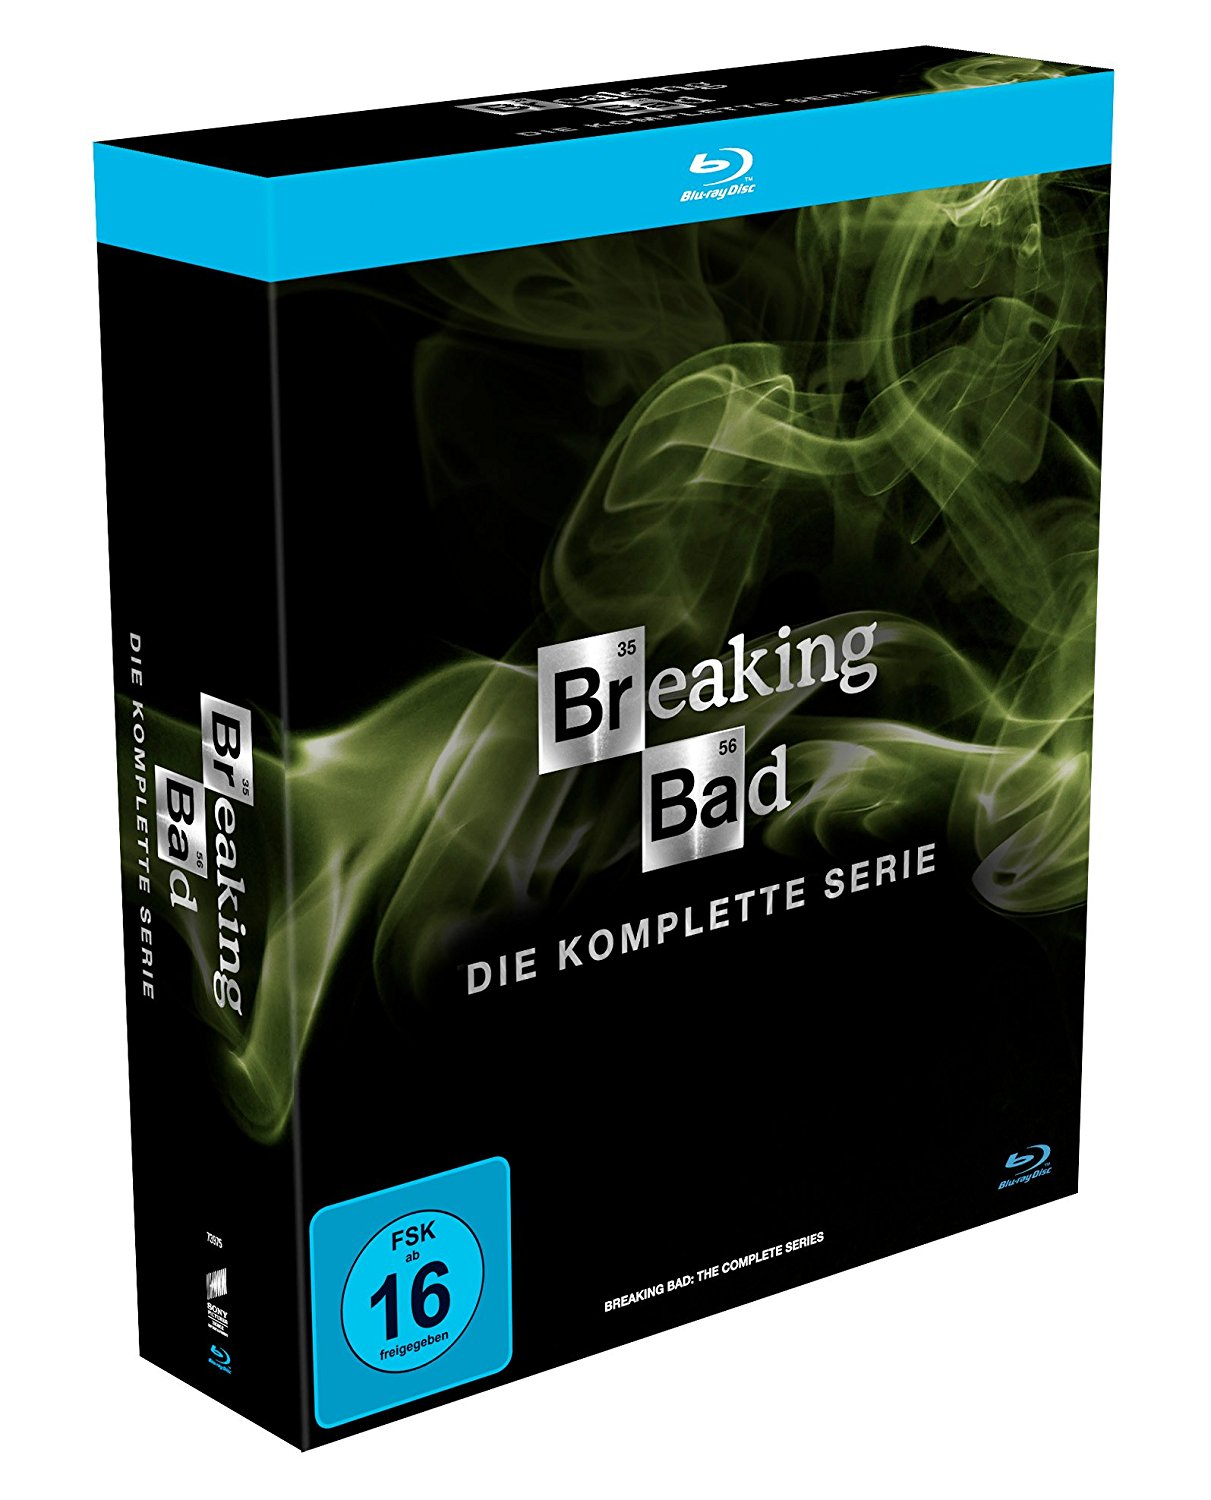 Breaking Bad Blu-ray amazon